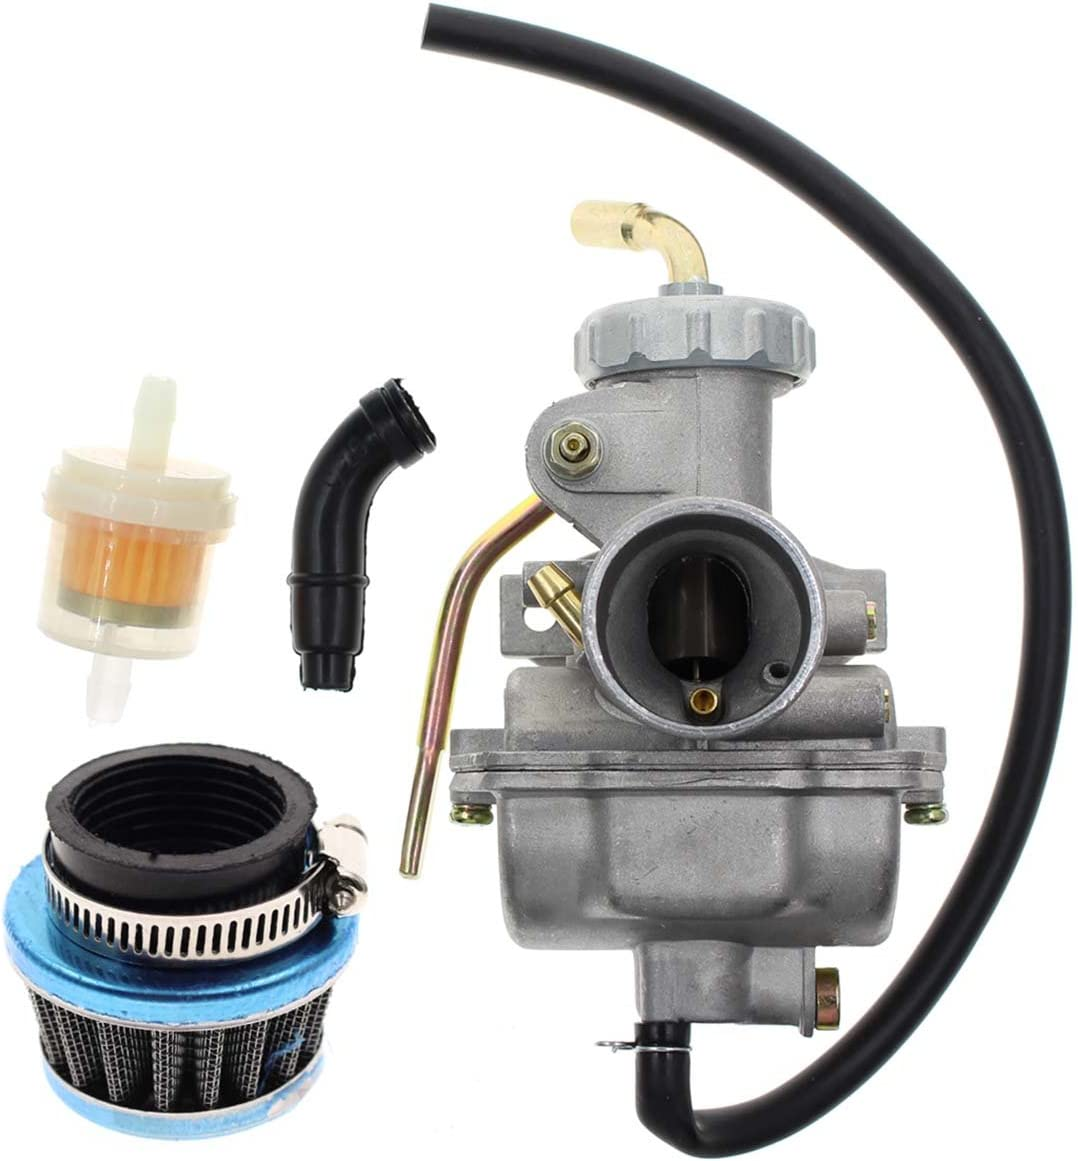 61PzteqS+cL._AC._SR360460 amazon com fuel system parts automotive carburetors, jets & jet